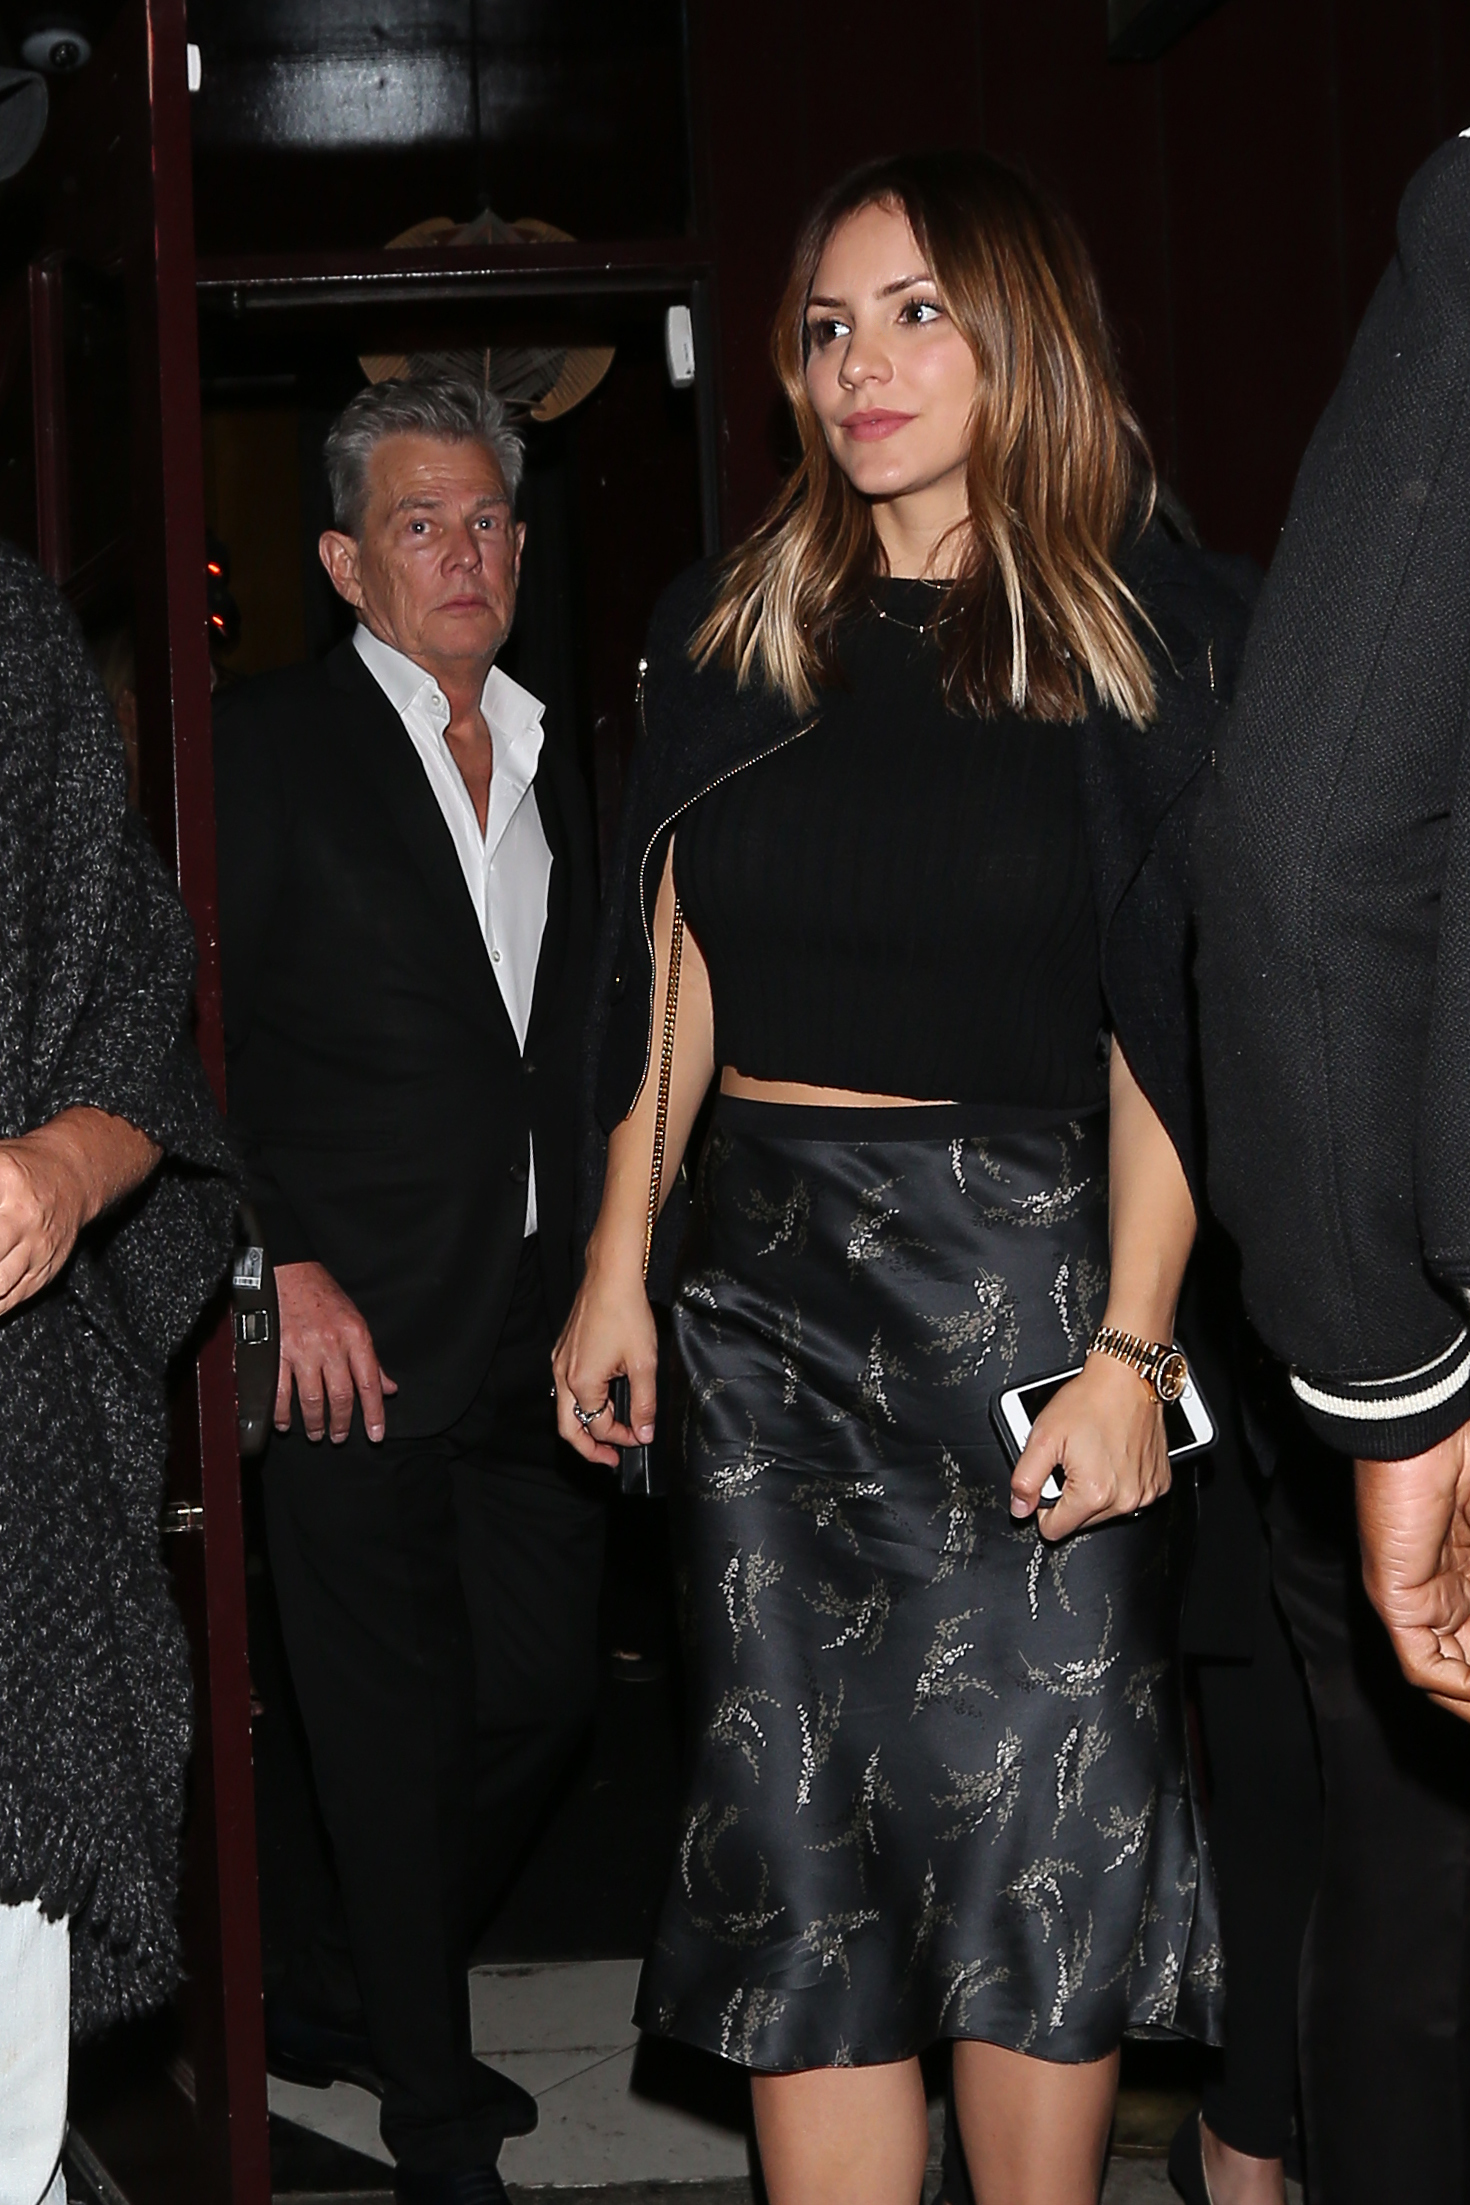 Katharine McPhee and David Foster spark a new round of romance rumors